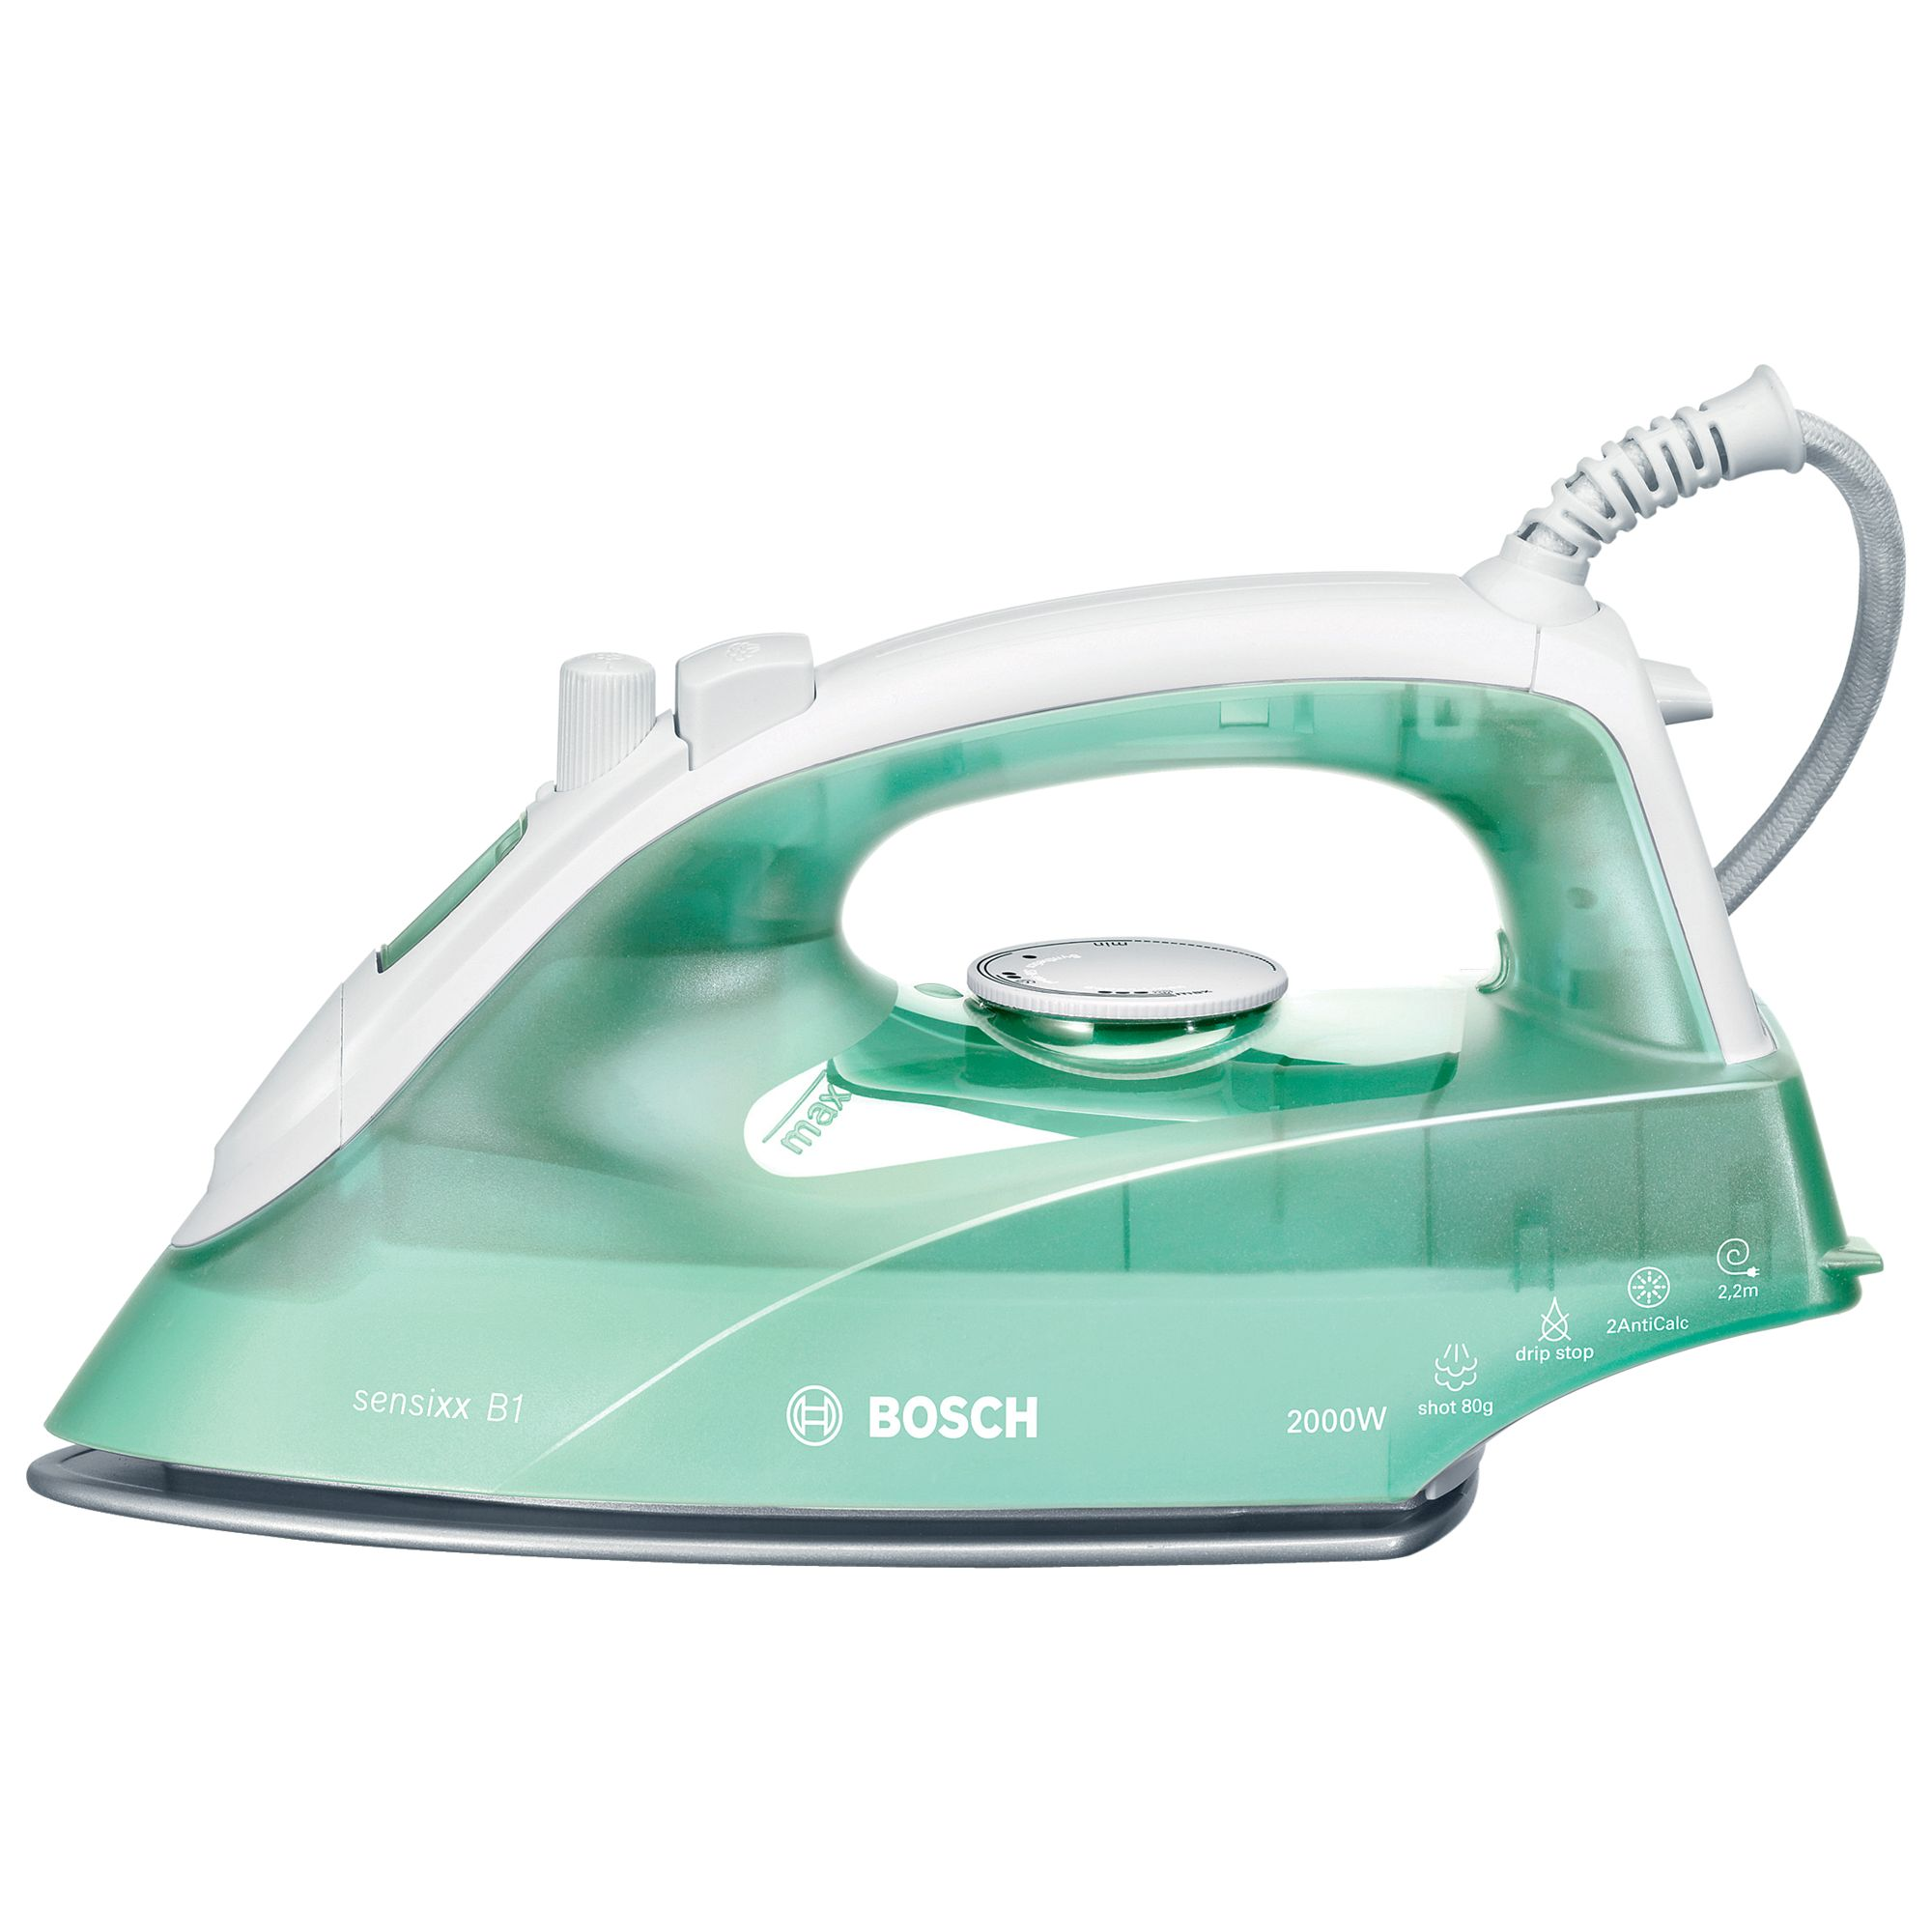 Steam irons and steam brushes